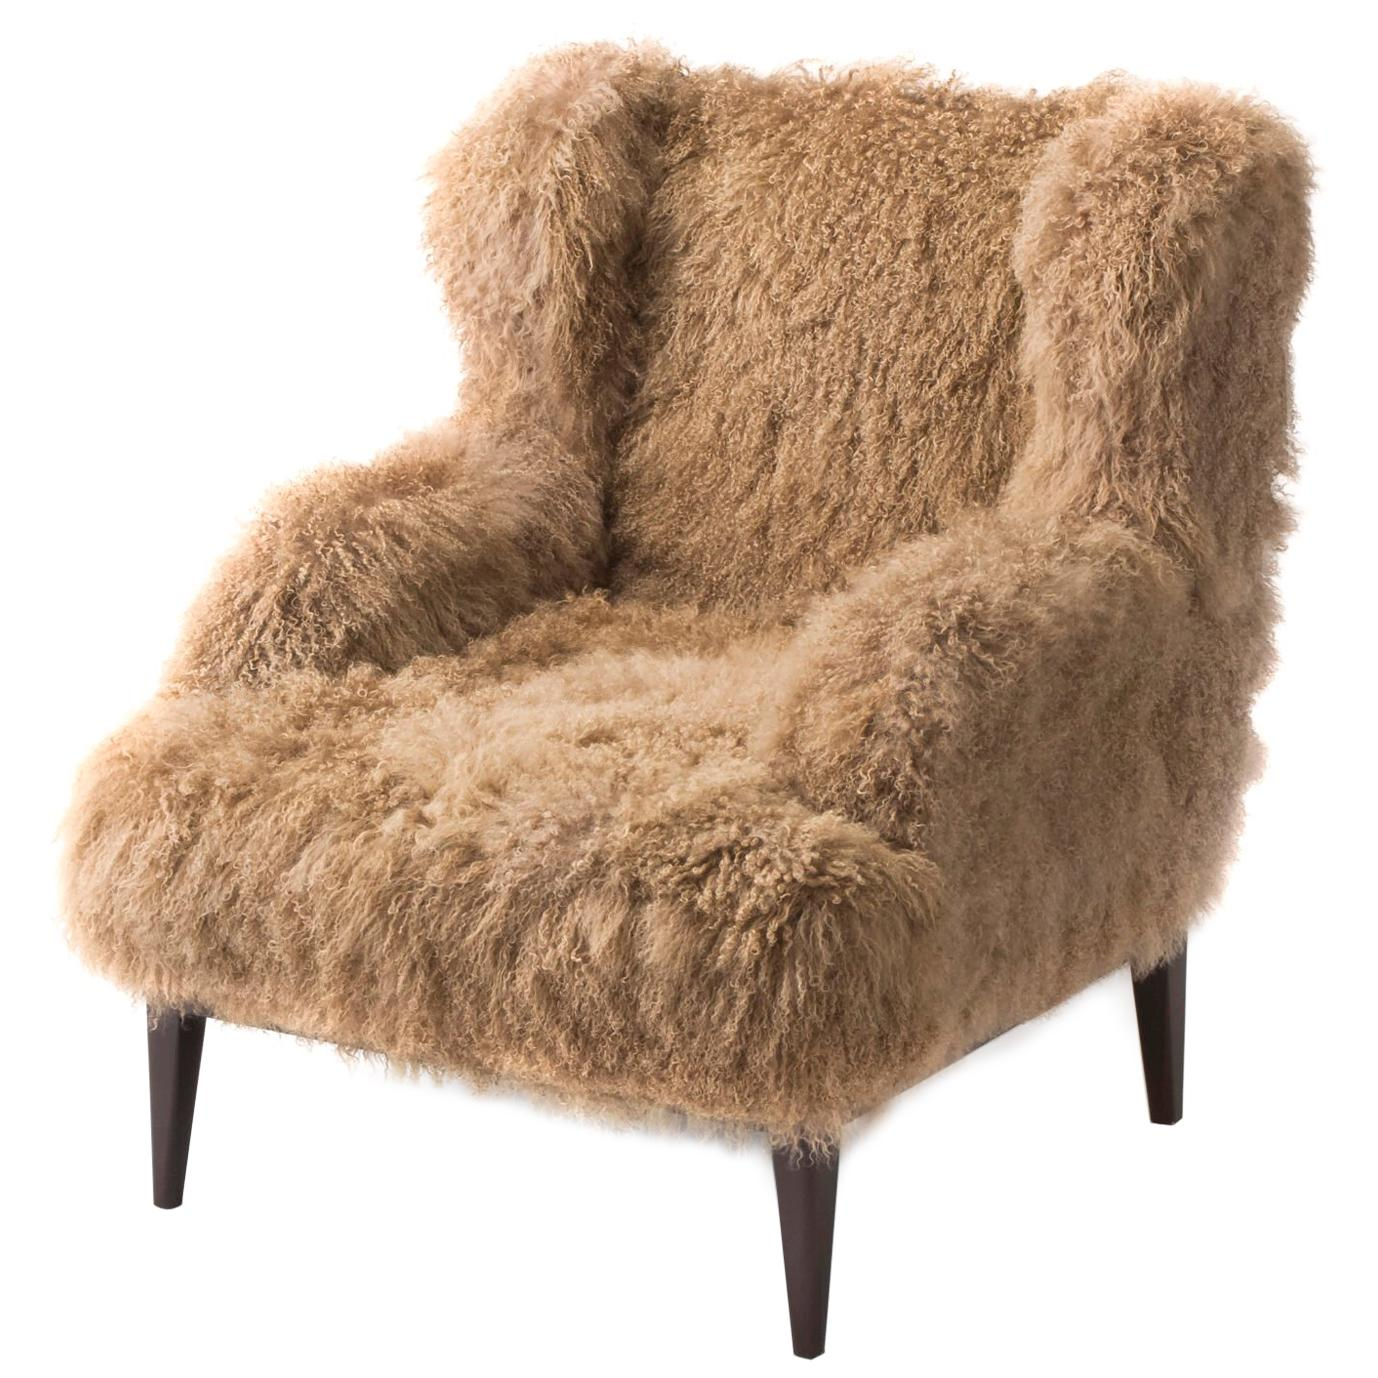 Beau Masculo Wing Chair, Contemporary High Back Mongolian Furry Armchair